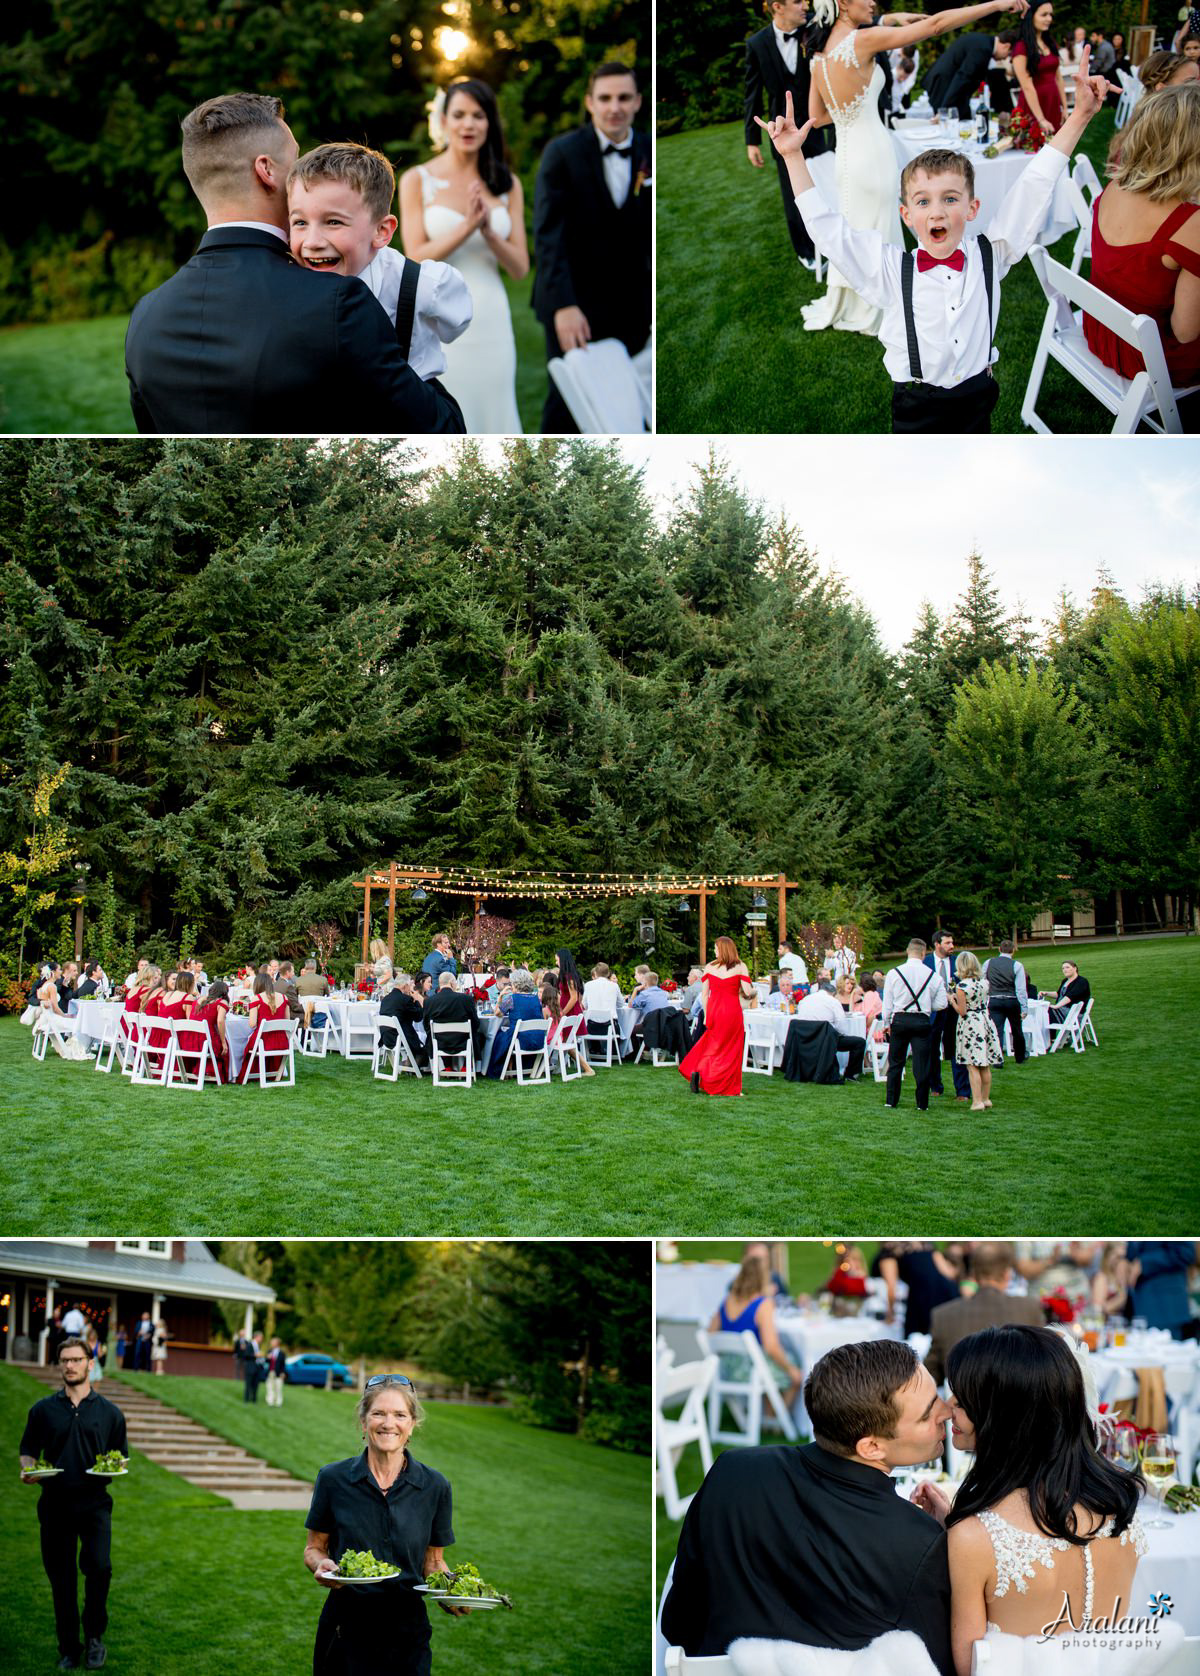 Gorge_Crest_Vineyard_Wedding037.jpg